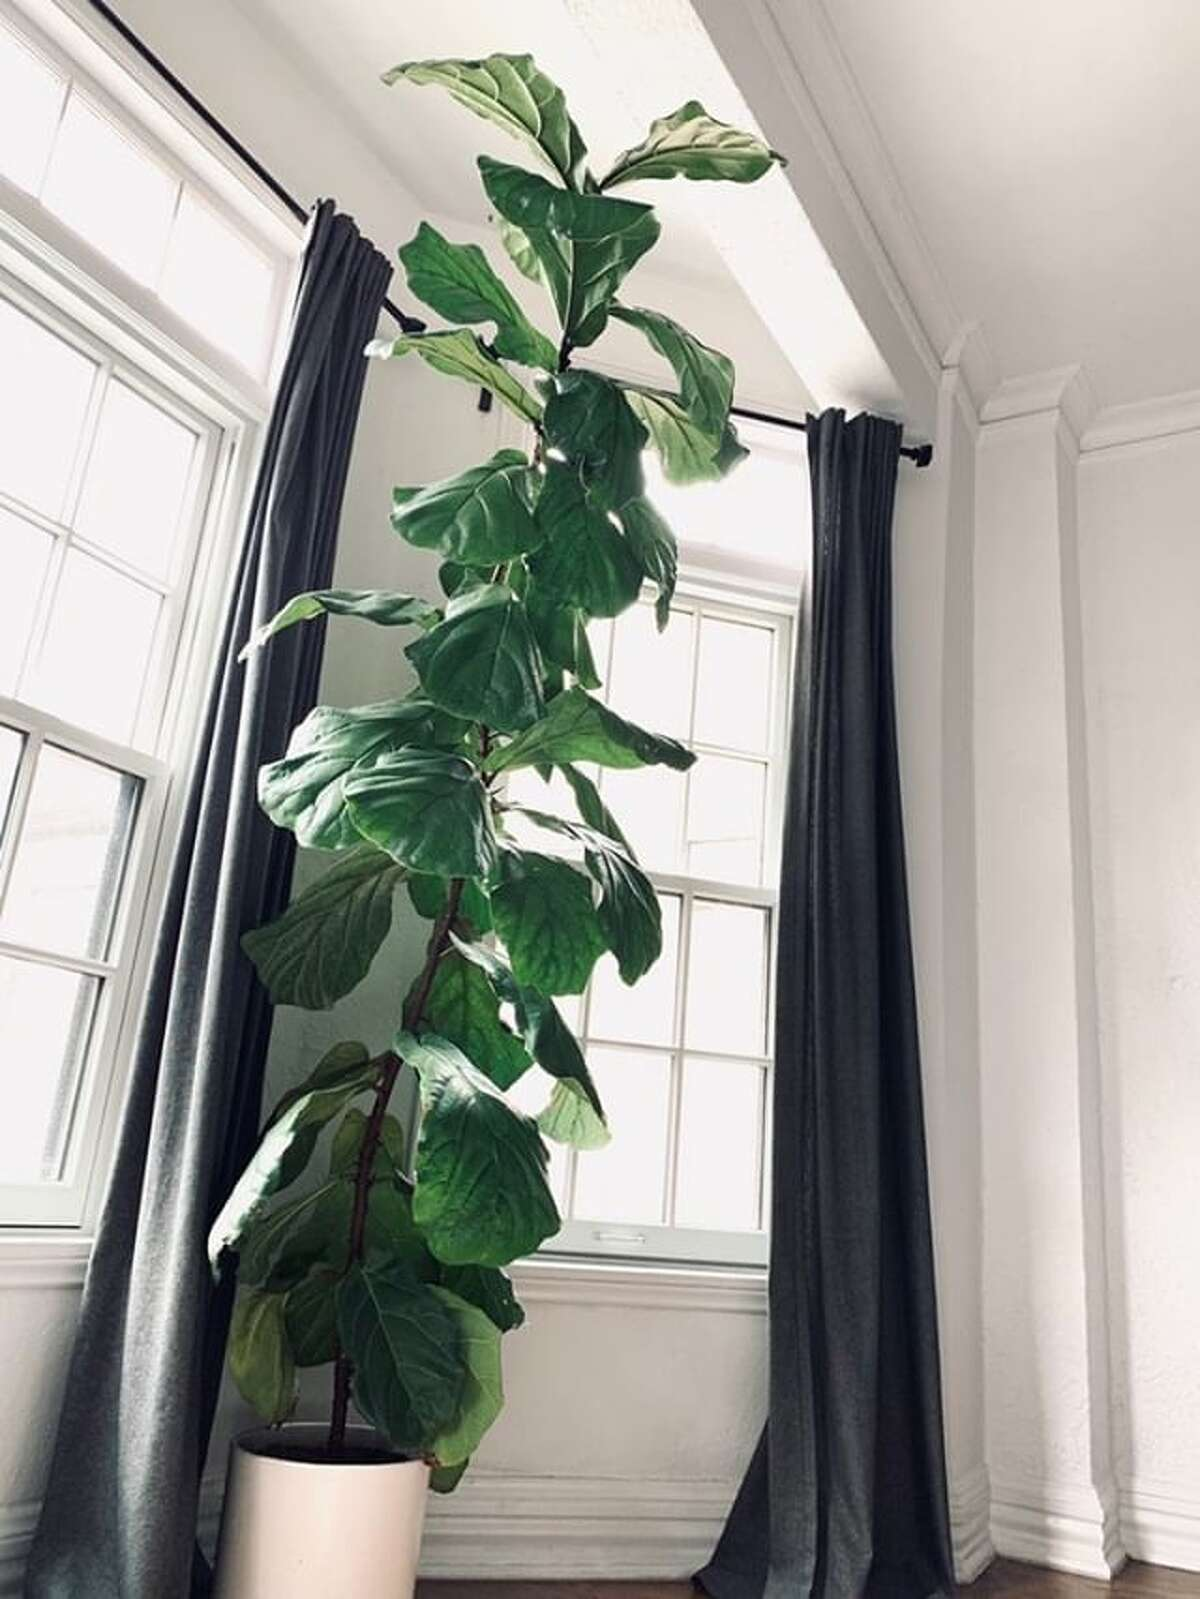 The tall, beautiful fiddle leaf fig in my friend Sarah Han's apartment.